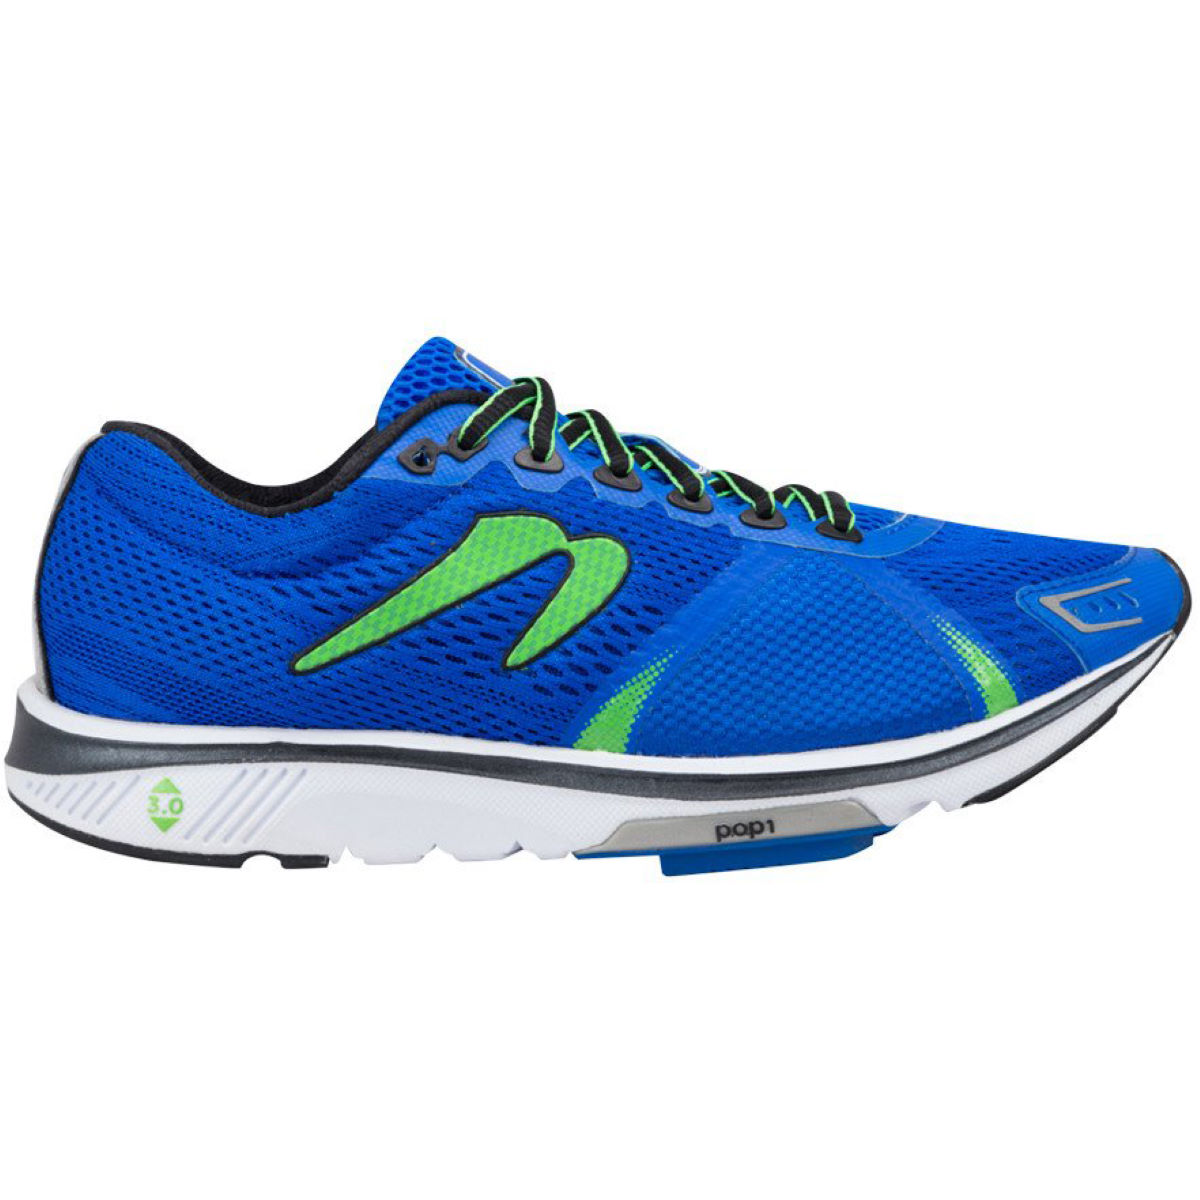 Chaussures Newton Running Shoes Gravity VI - 7,5 UK Bleu